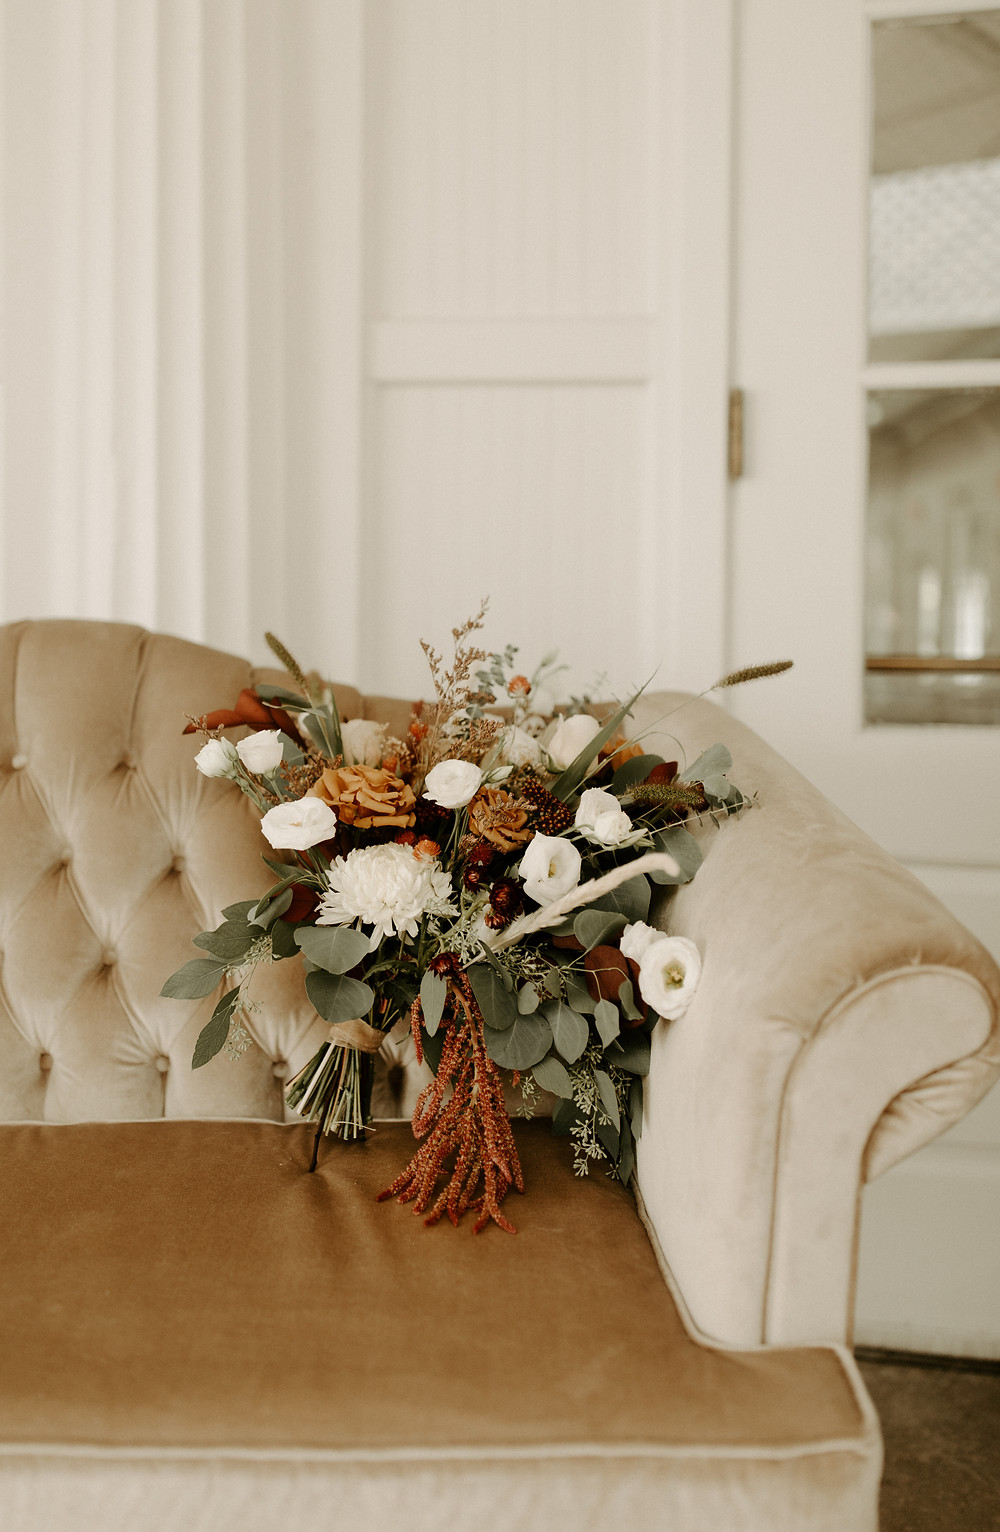 Ivory cream wedding sofa decor